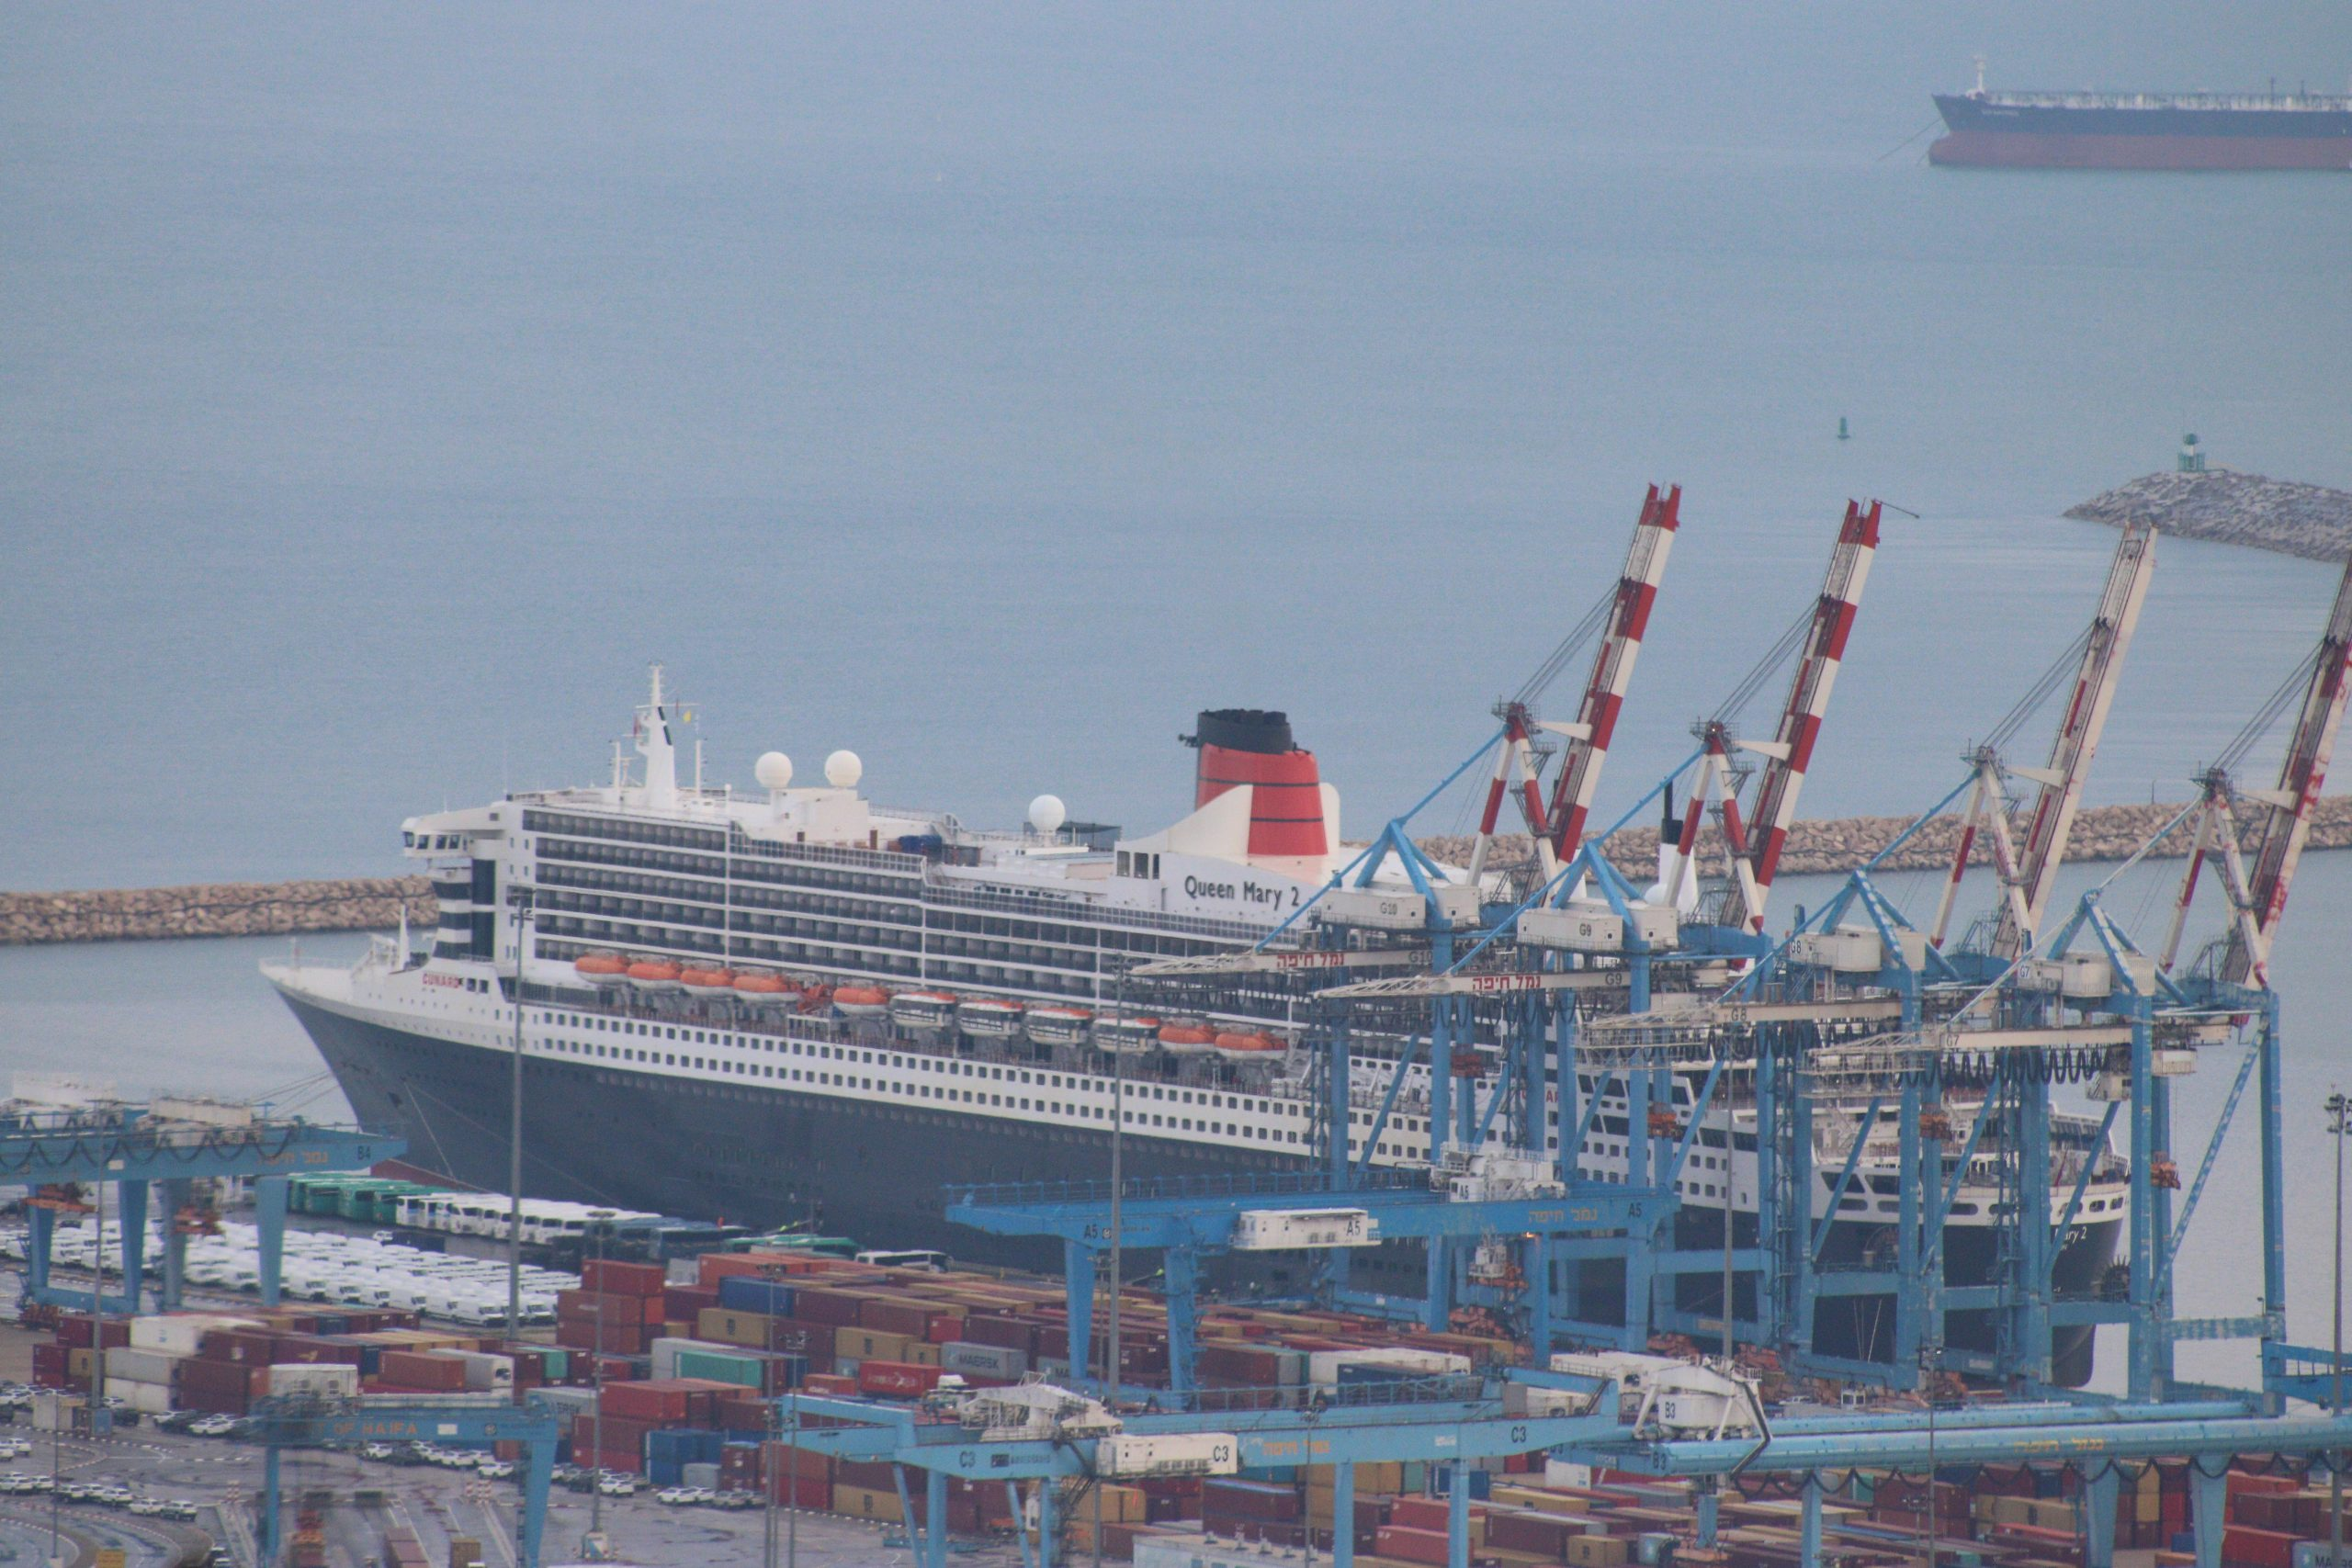 Queen Mary 2, the luxury cruise ship, arrives to Haifa